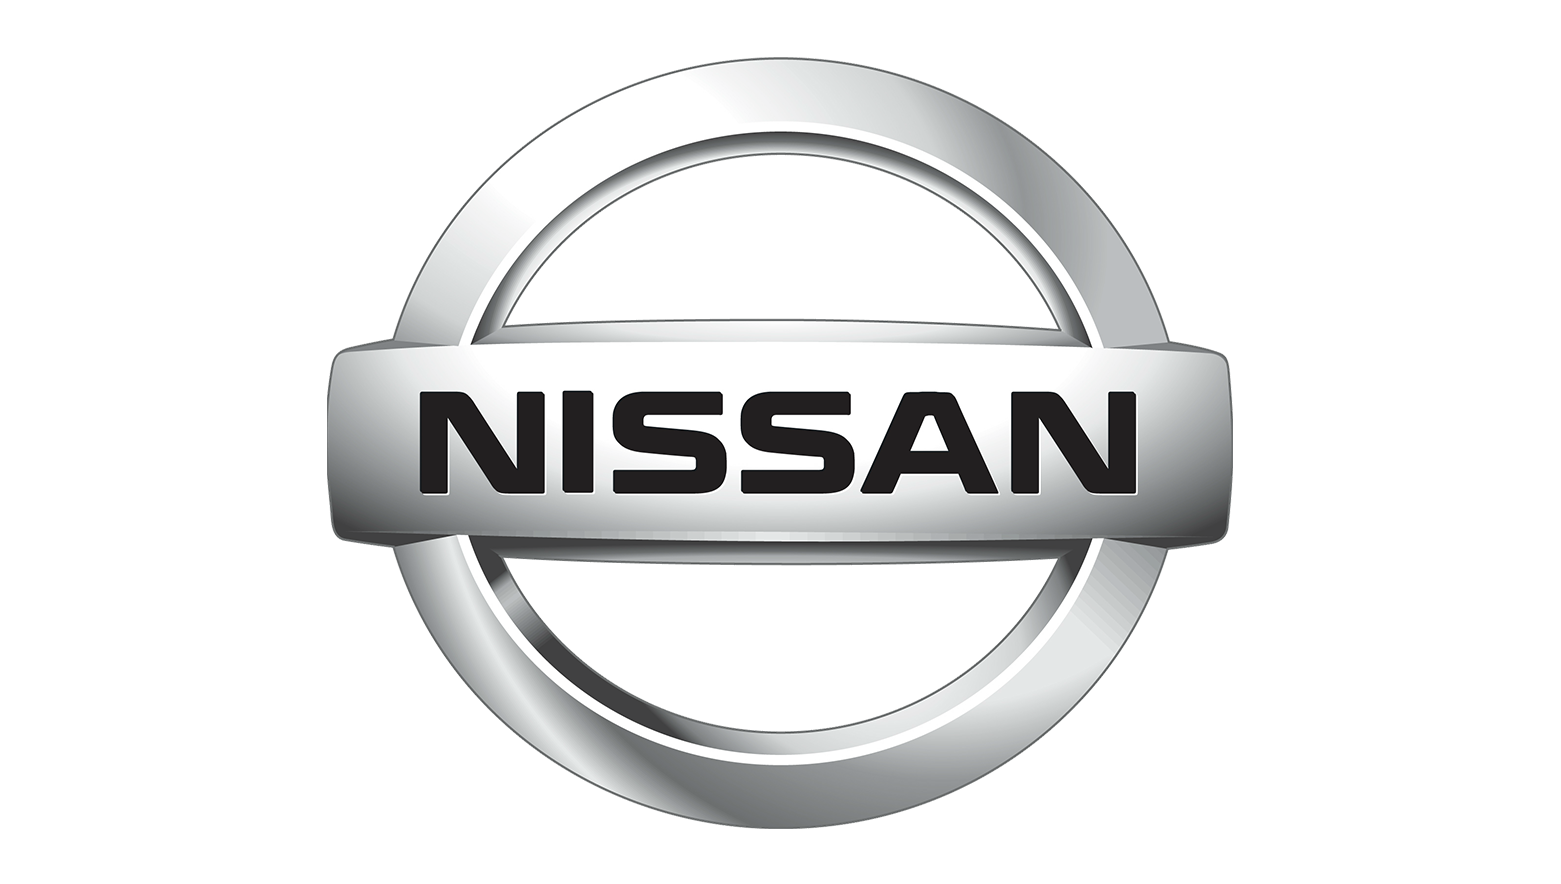 The Nissan Logo